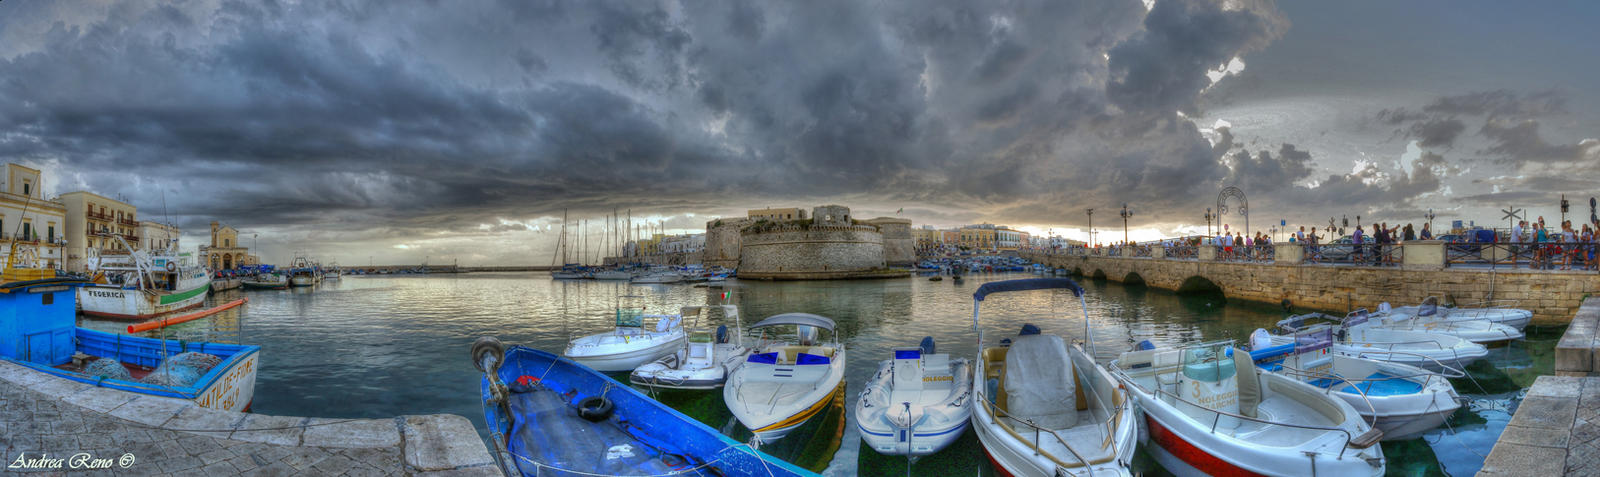 Gallipoli-Harbour by andreareno